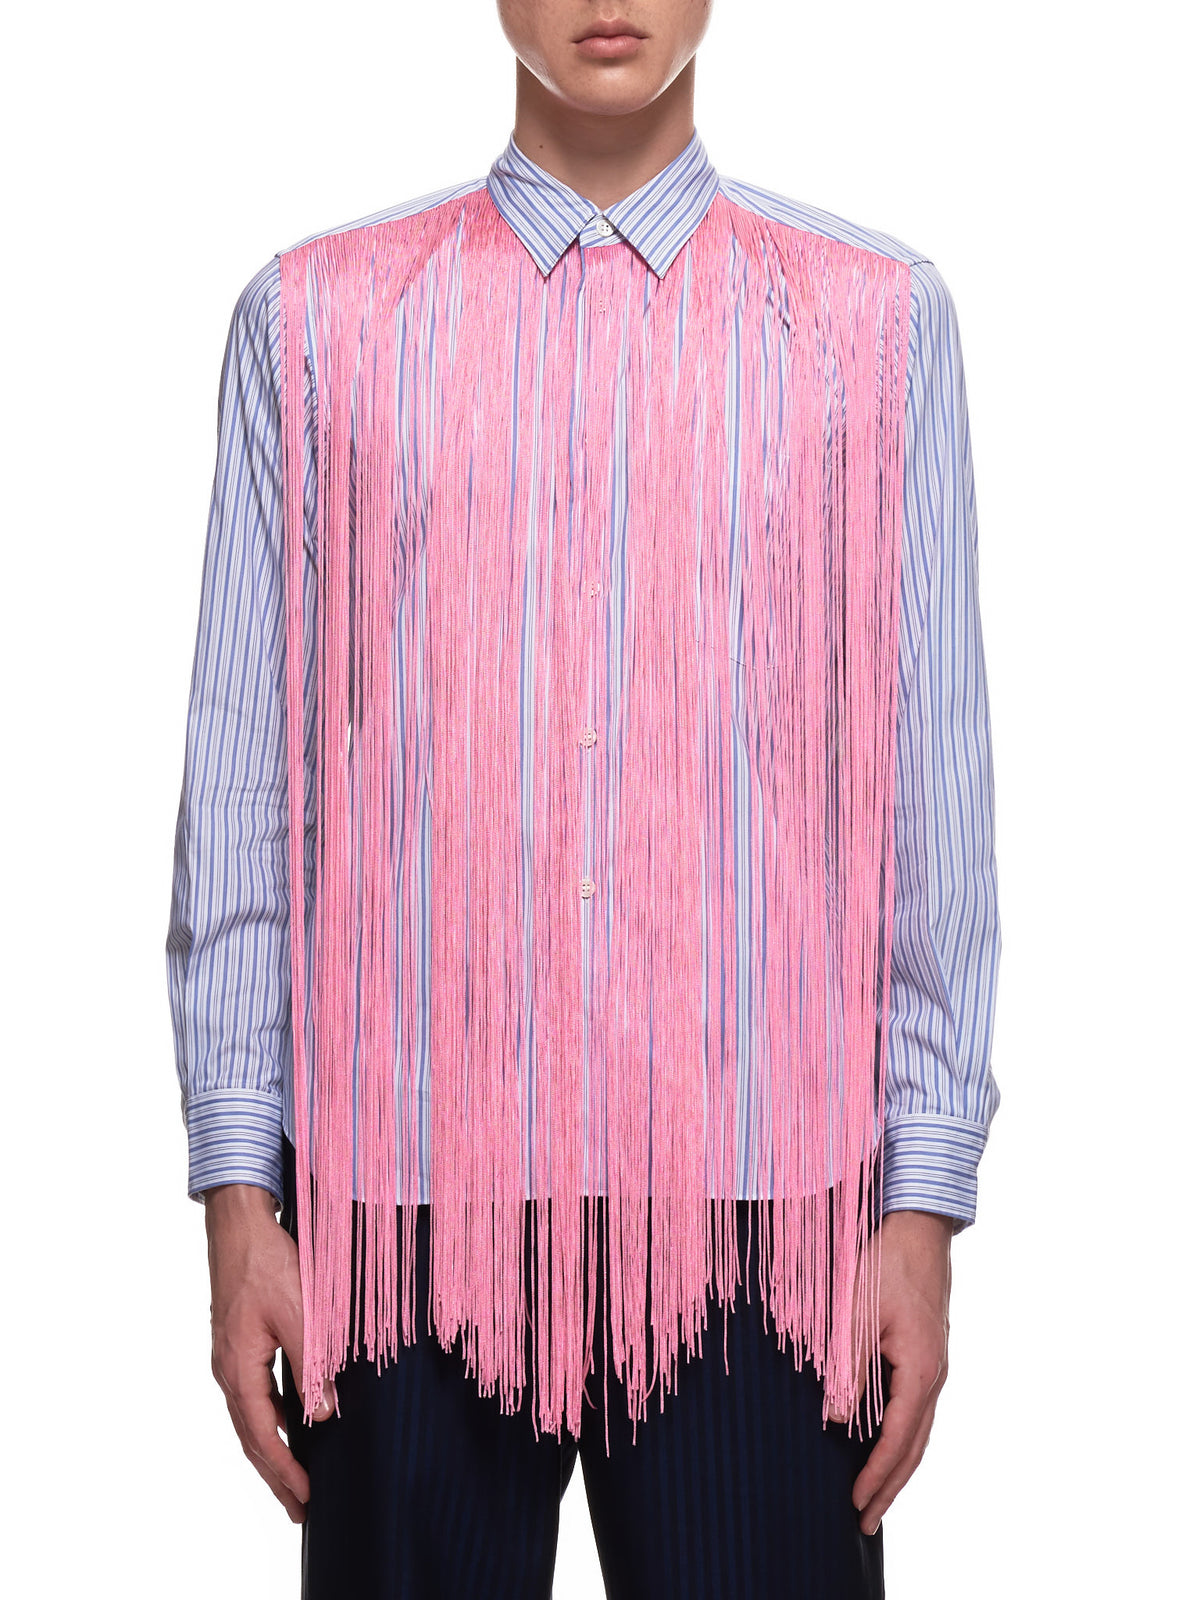 Stringy Waterfall Front Shirt (PF-B029-051-WHT-BL-PK)